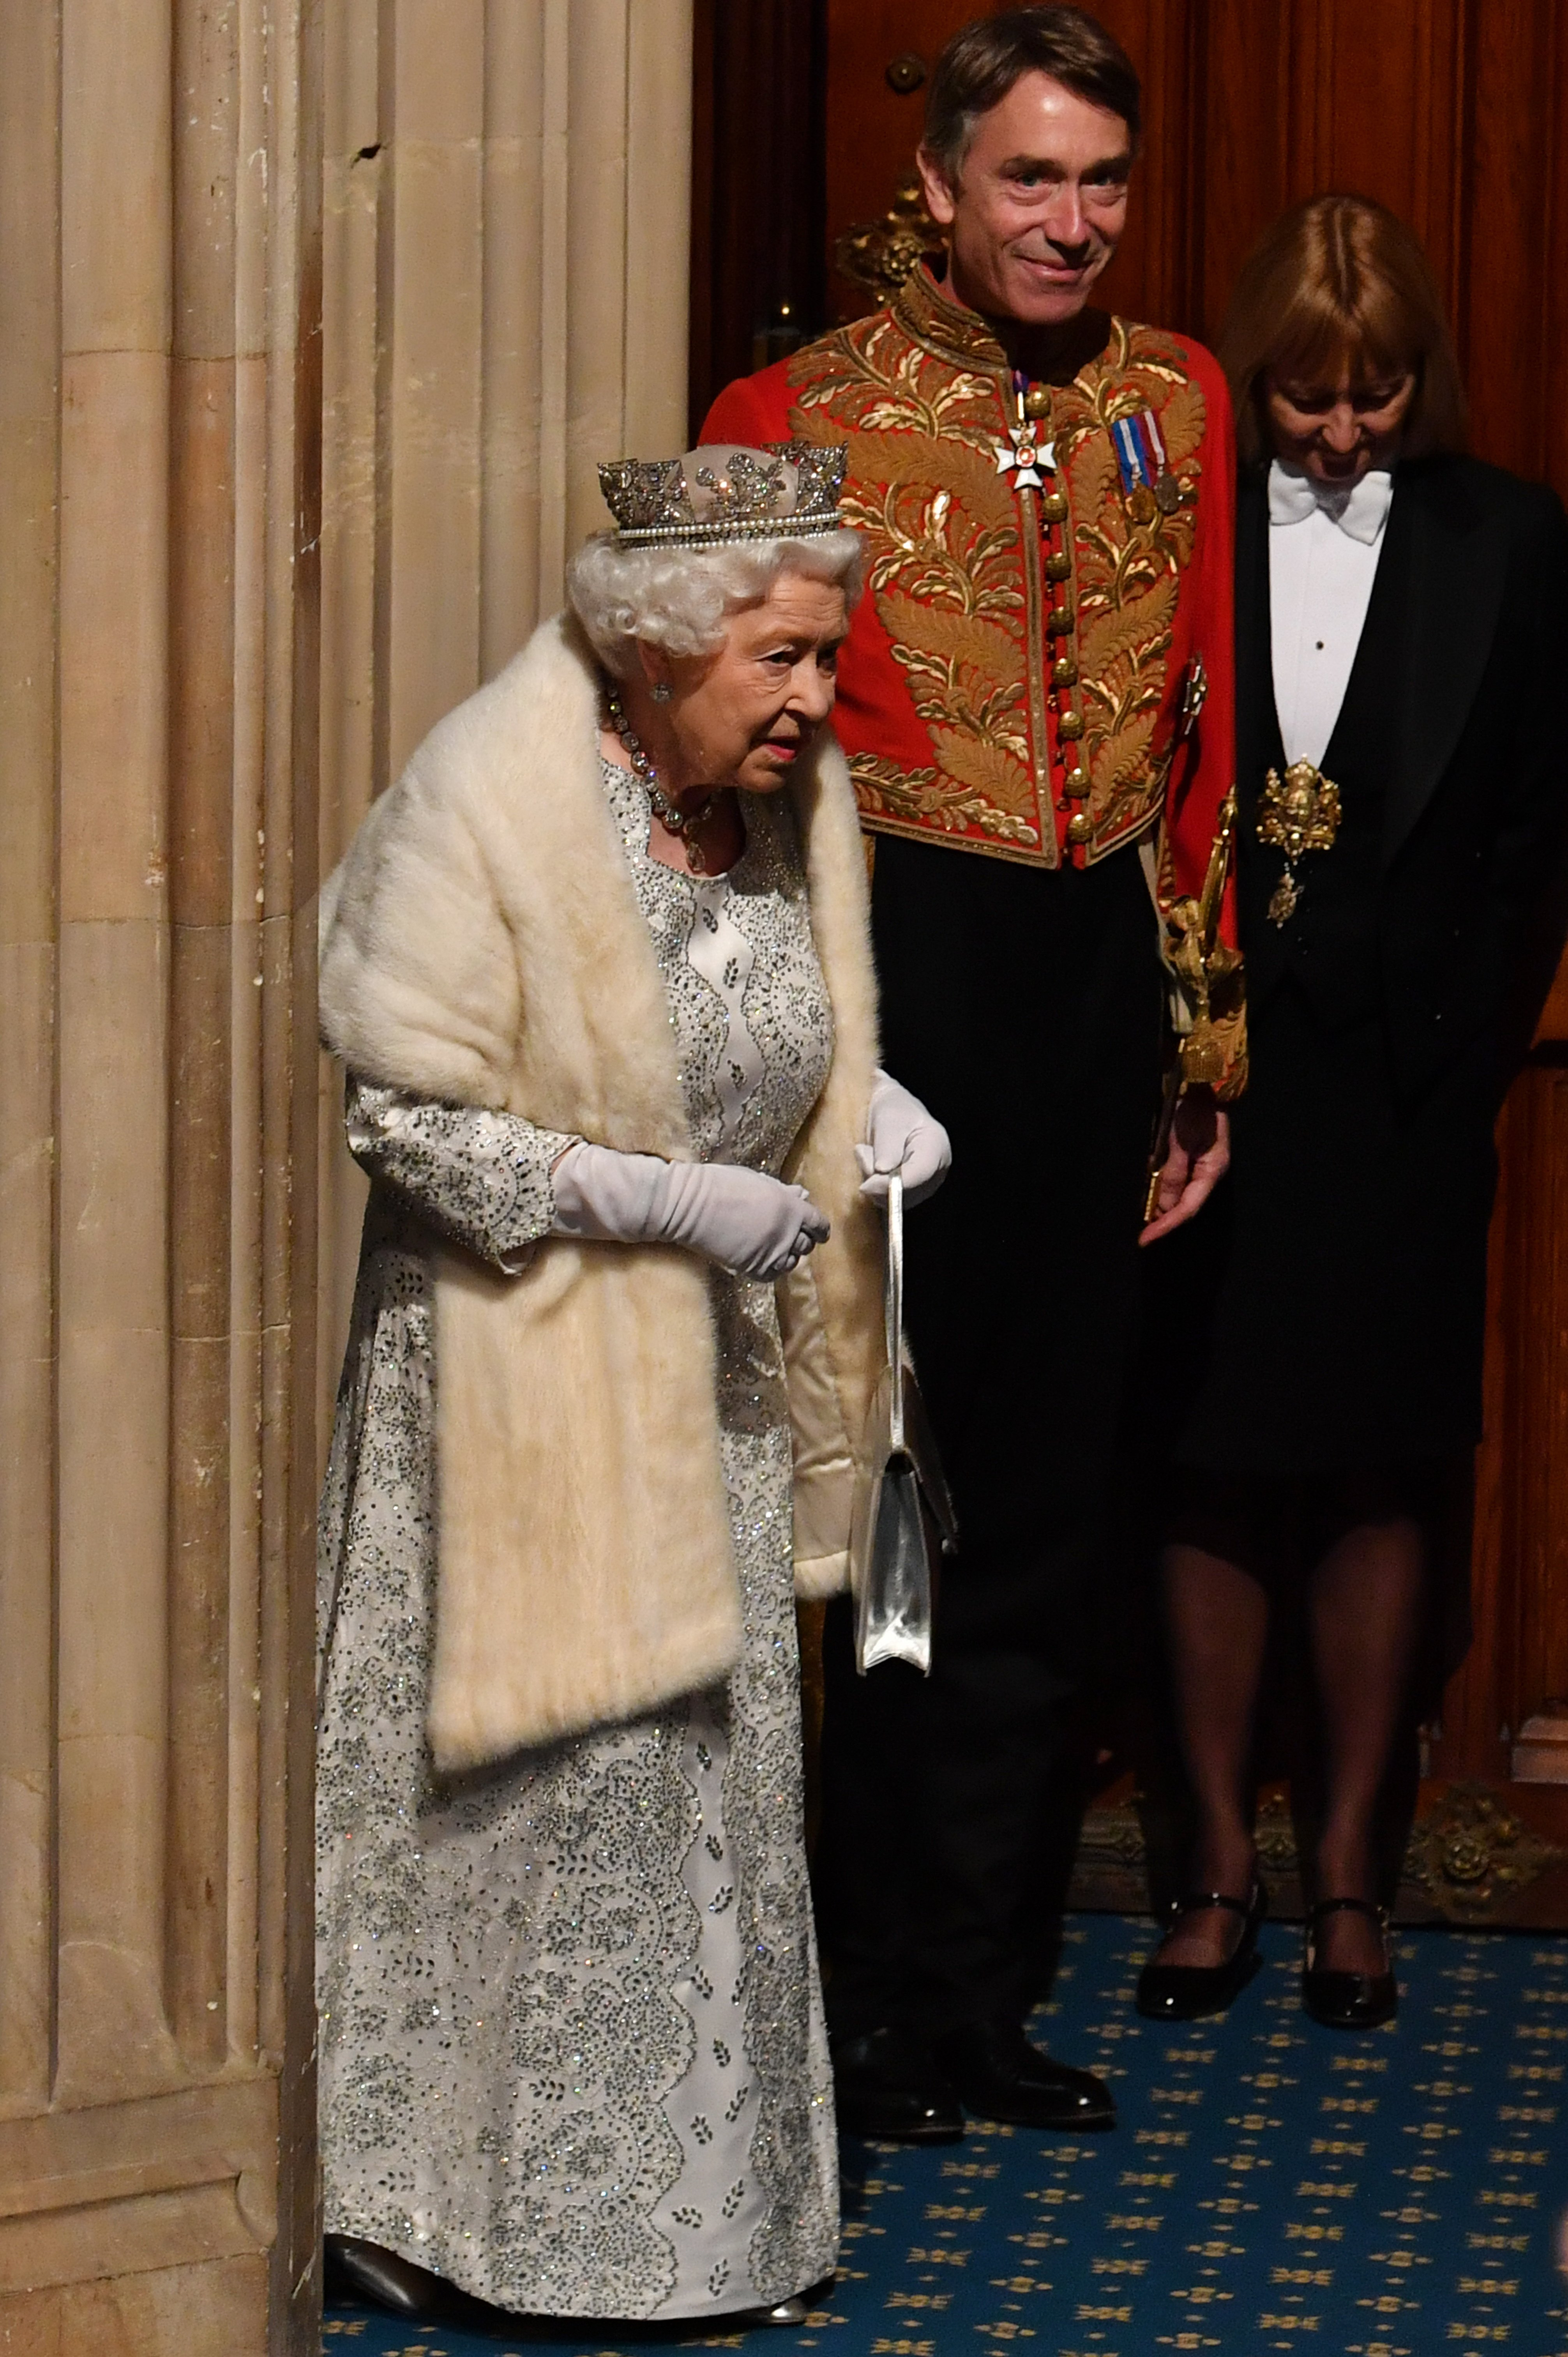 Queen Elizabeth II (L) arrives with David Cholmondeley, Marquess of Cholmondeley, (2L) to attend the State Opening of Parliament at the Palace of Westminster on October 14, 2019, in London, England. | Source: Getty Images.